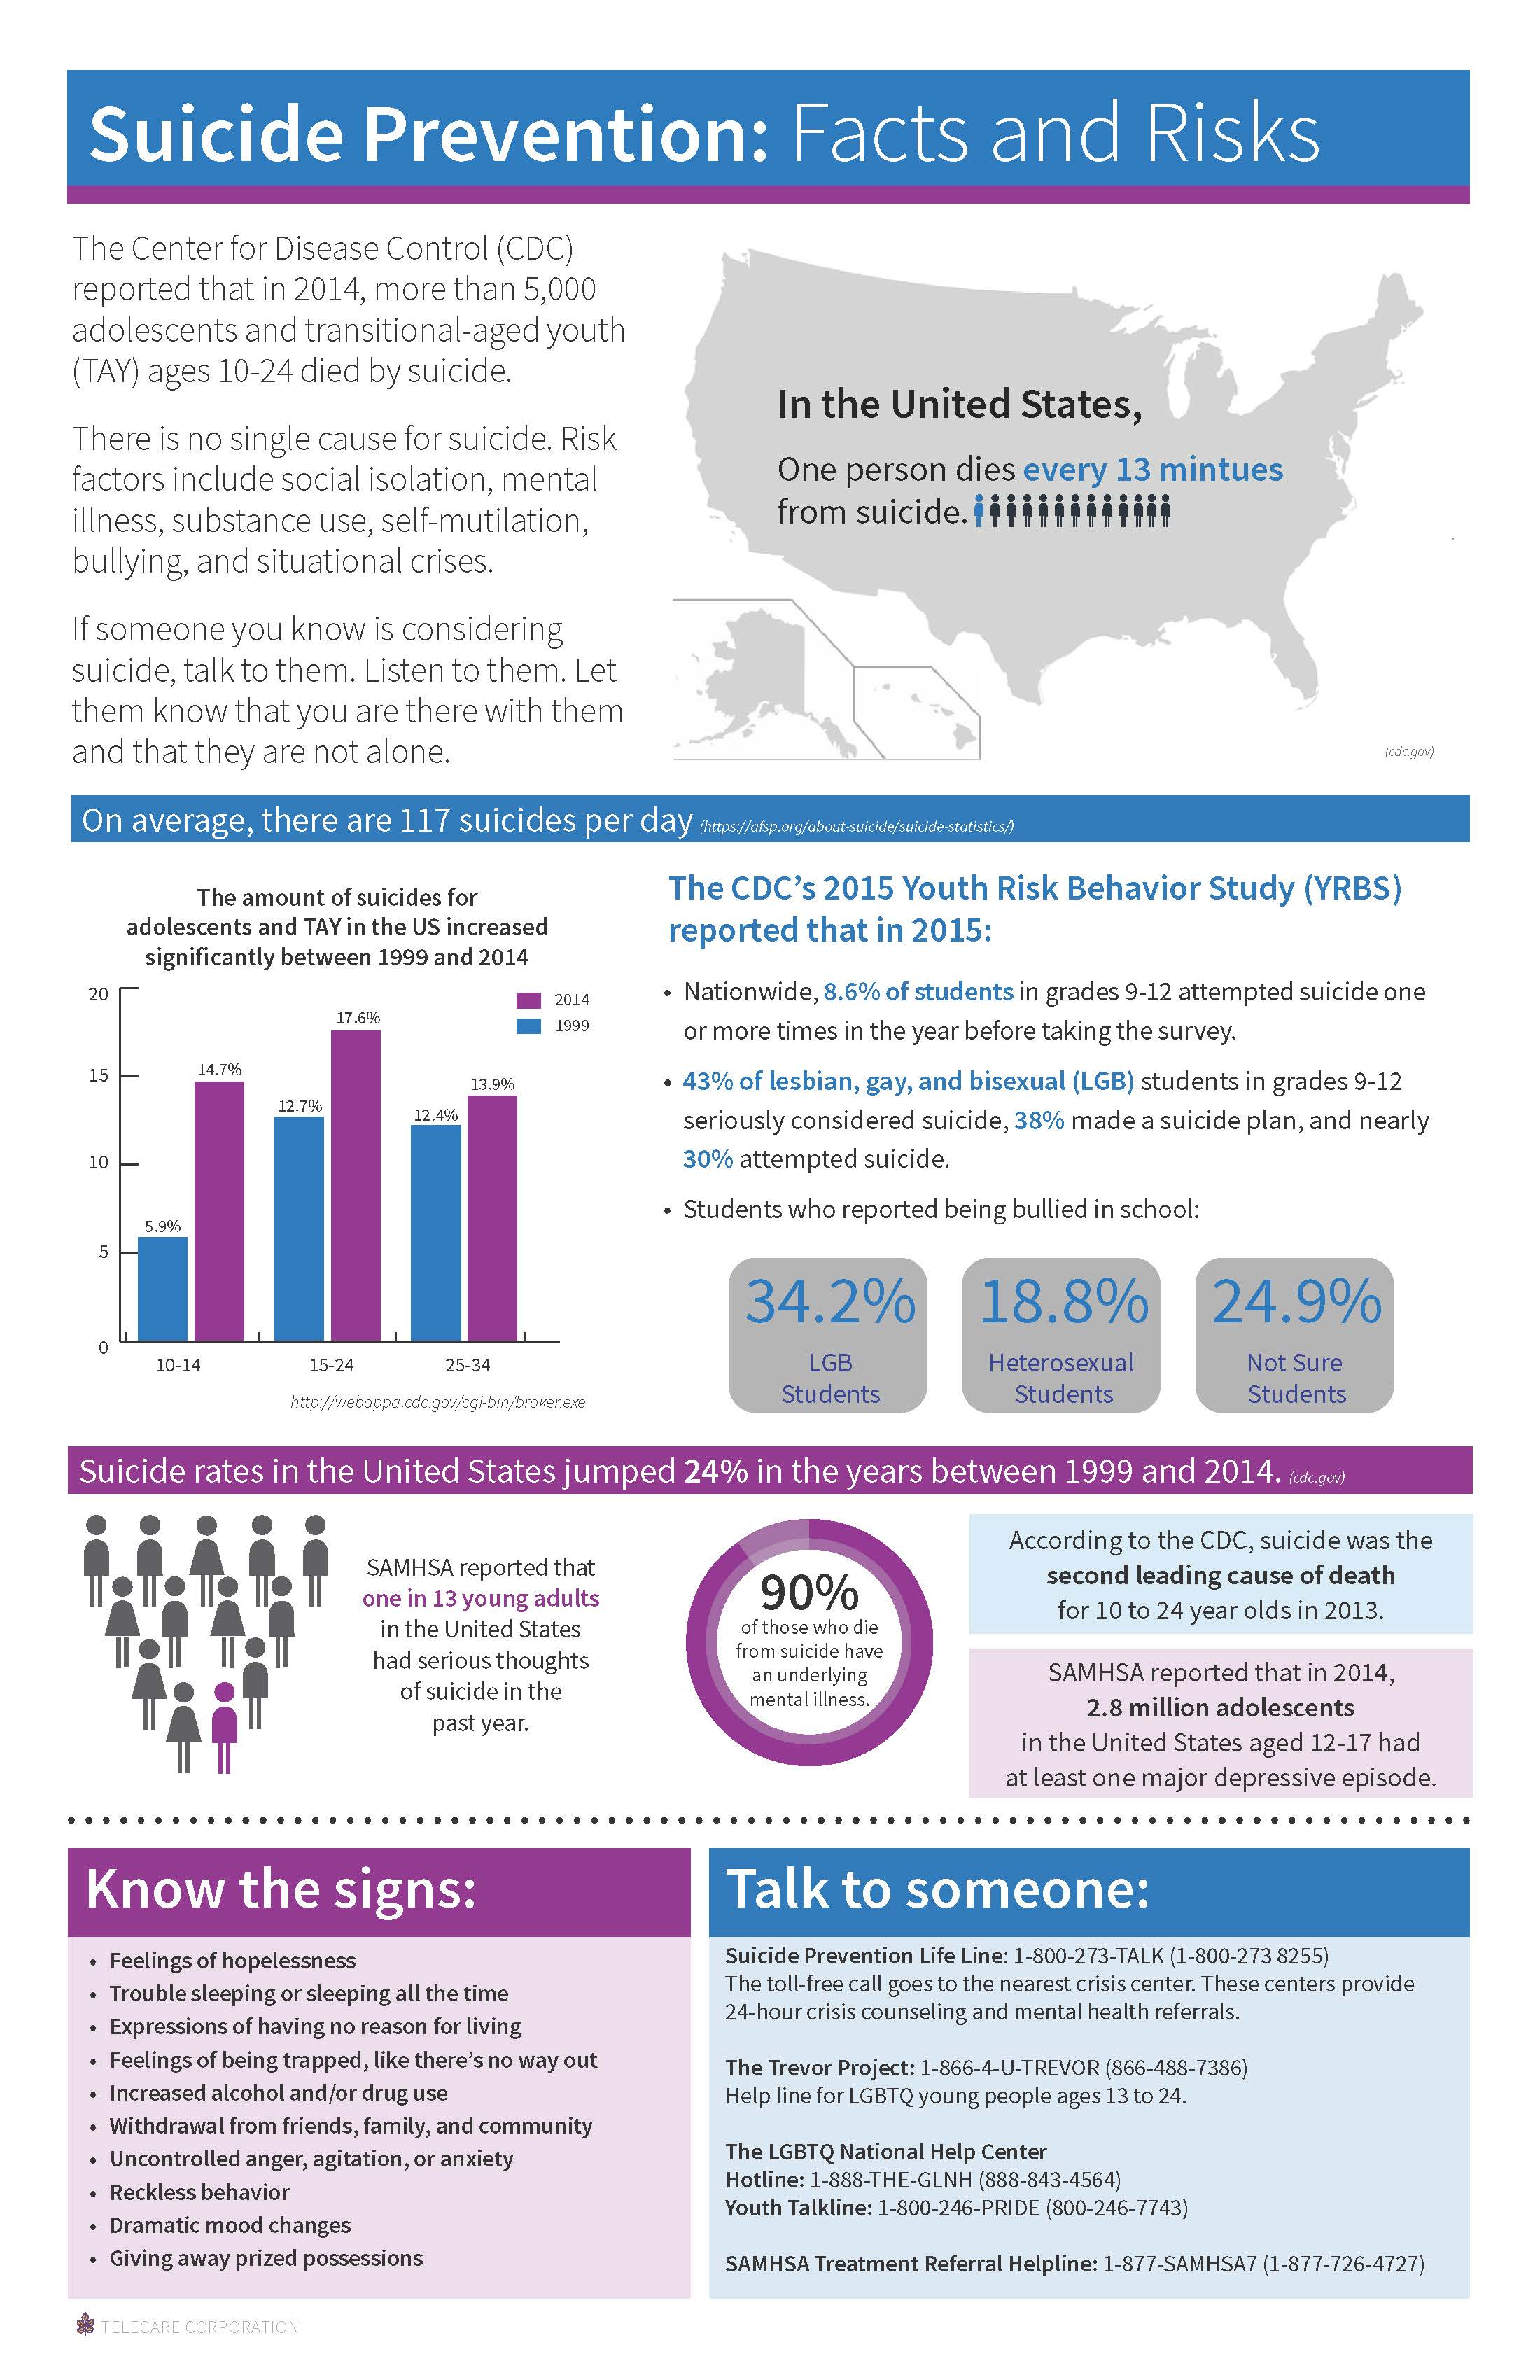 CLICK HERE TO DOWNLOAD THE SUICIDE PREVENTION STATISTICS INFOGRAPHIC FOR TAY/YOUth